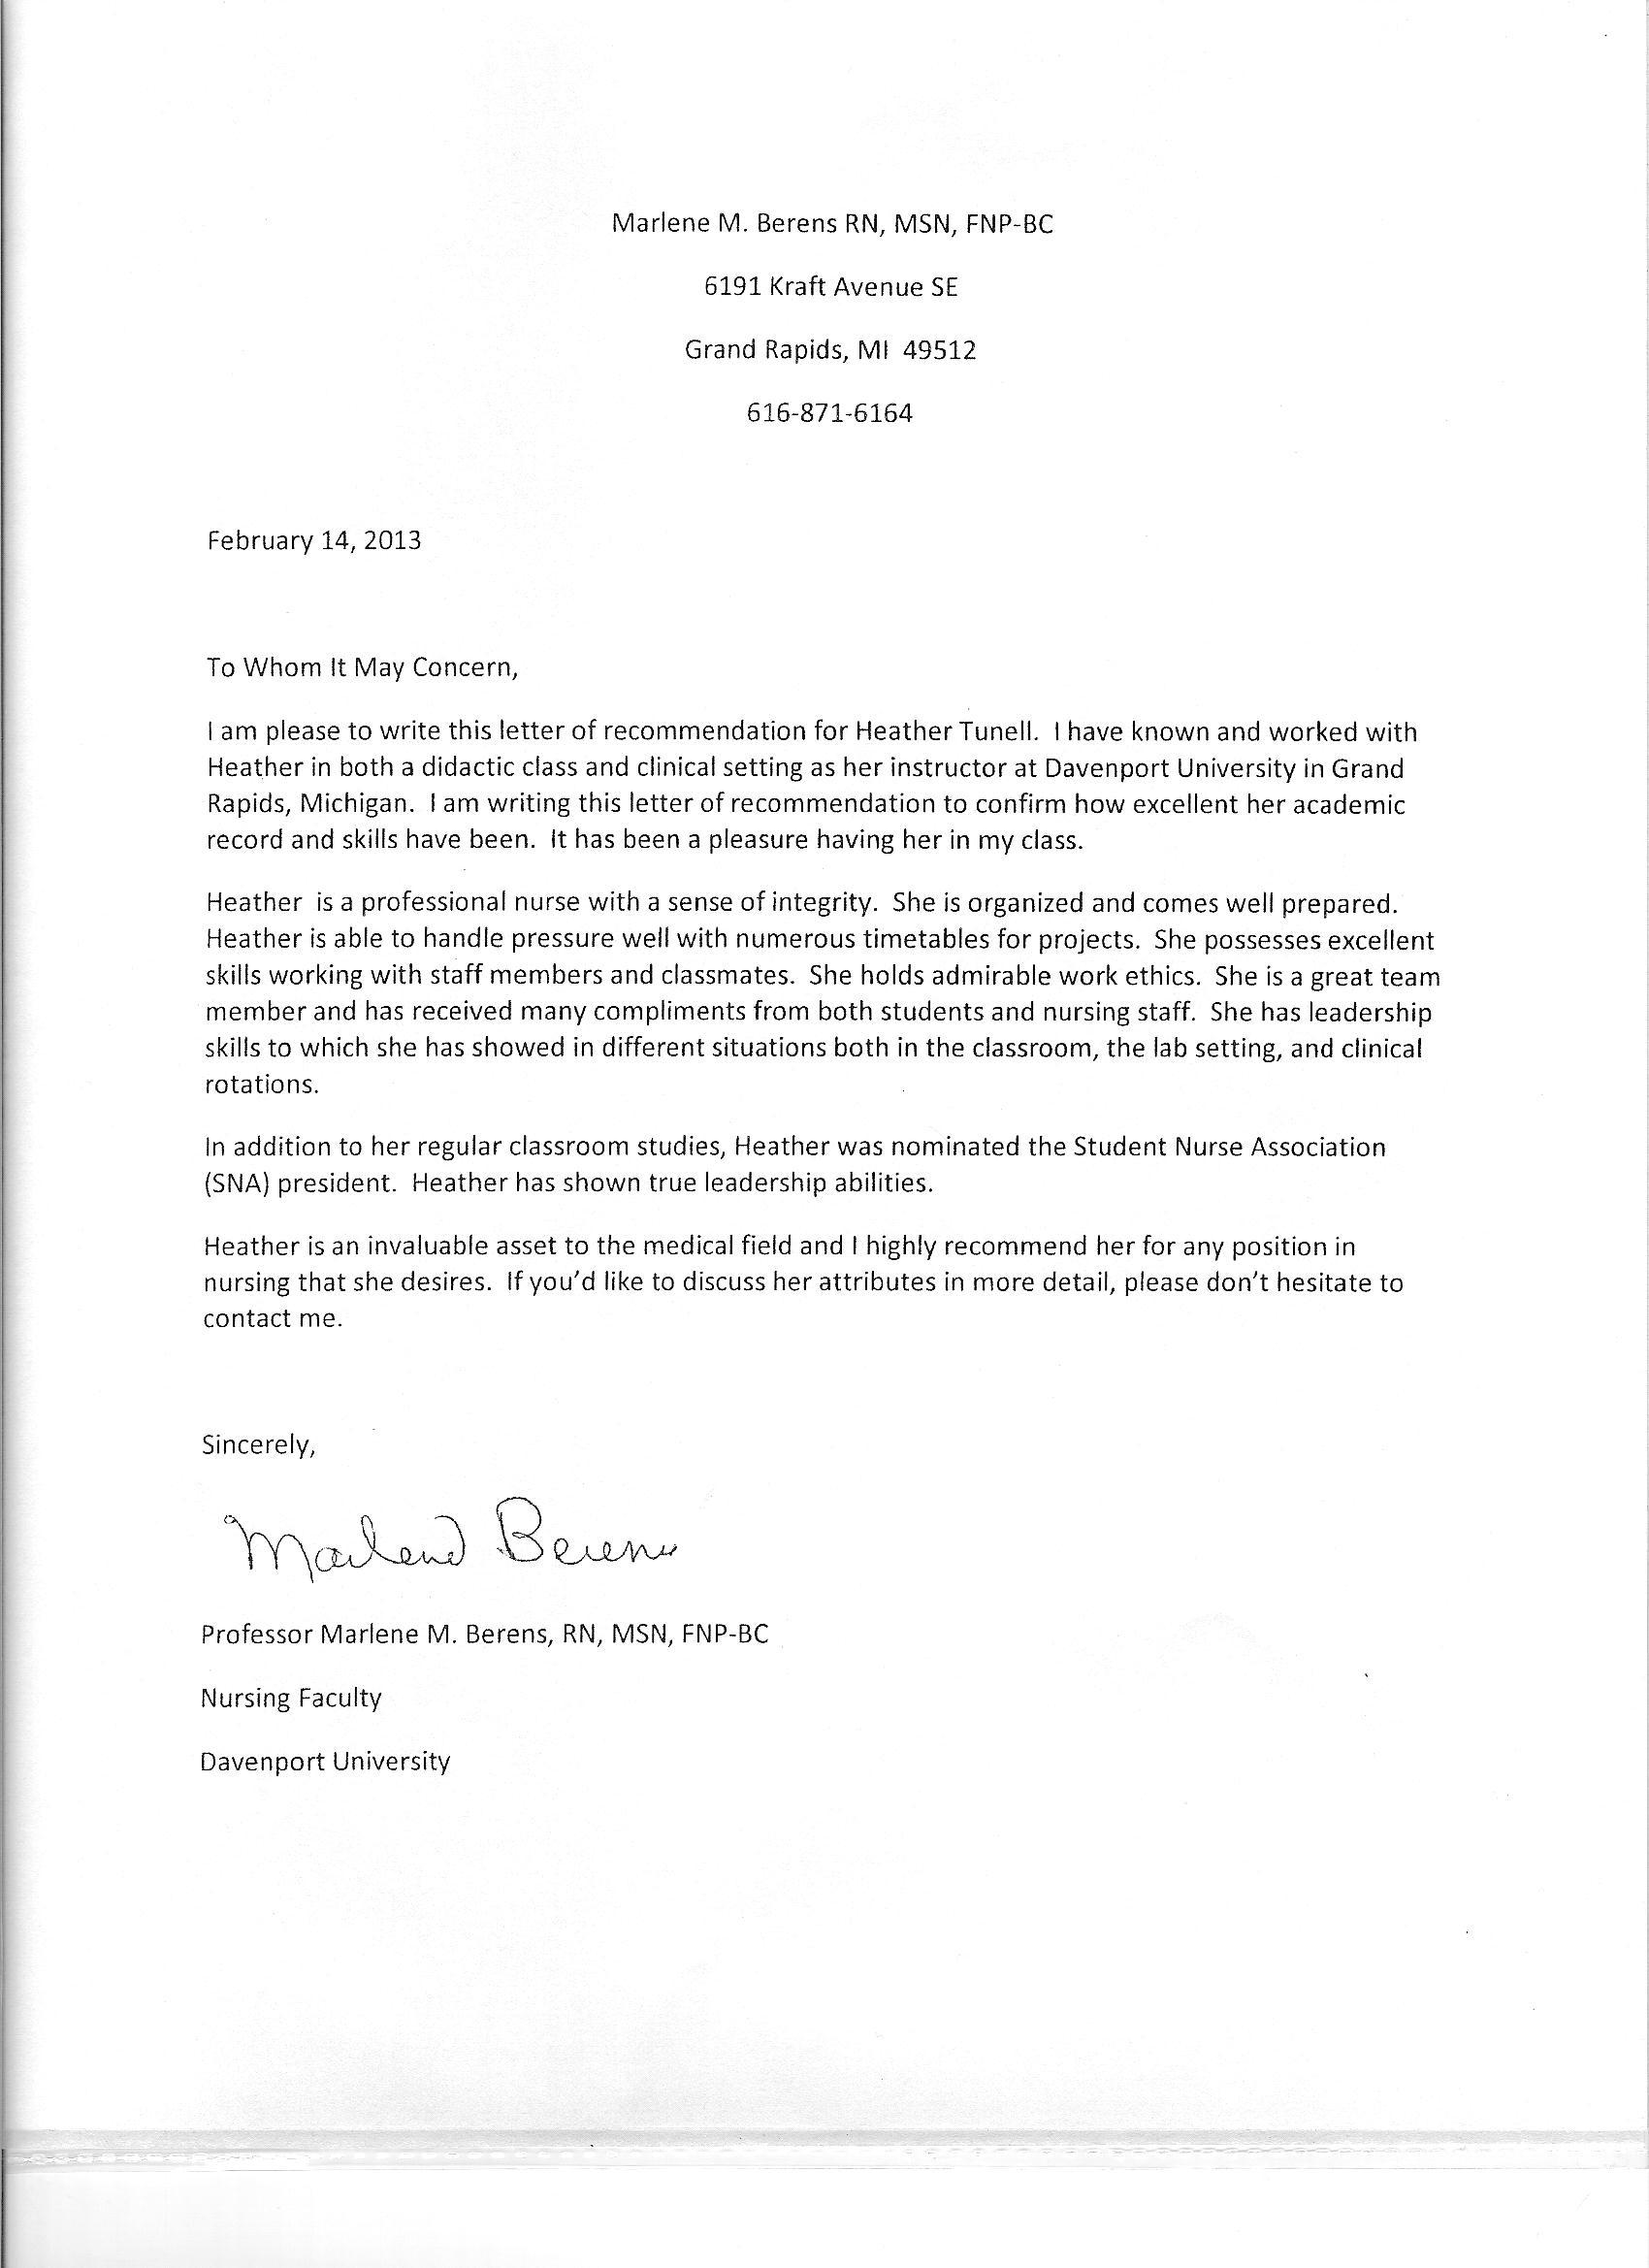 Faculty Recommendation Letter Sample